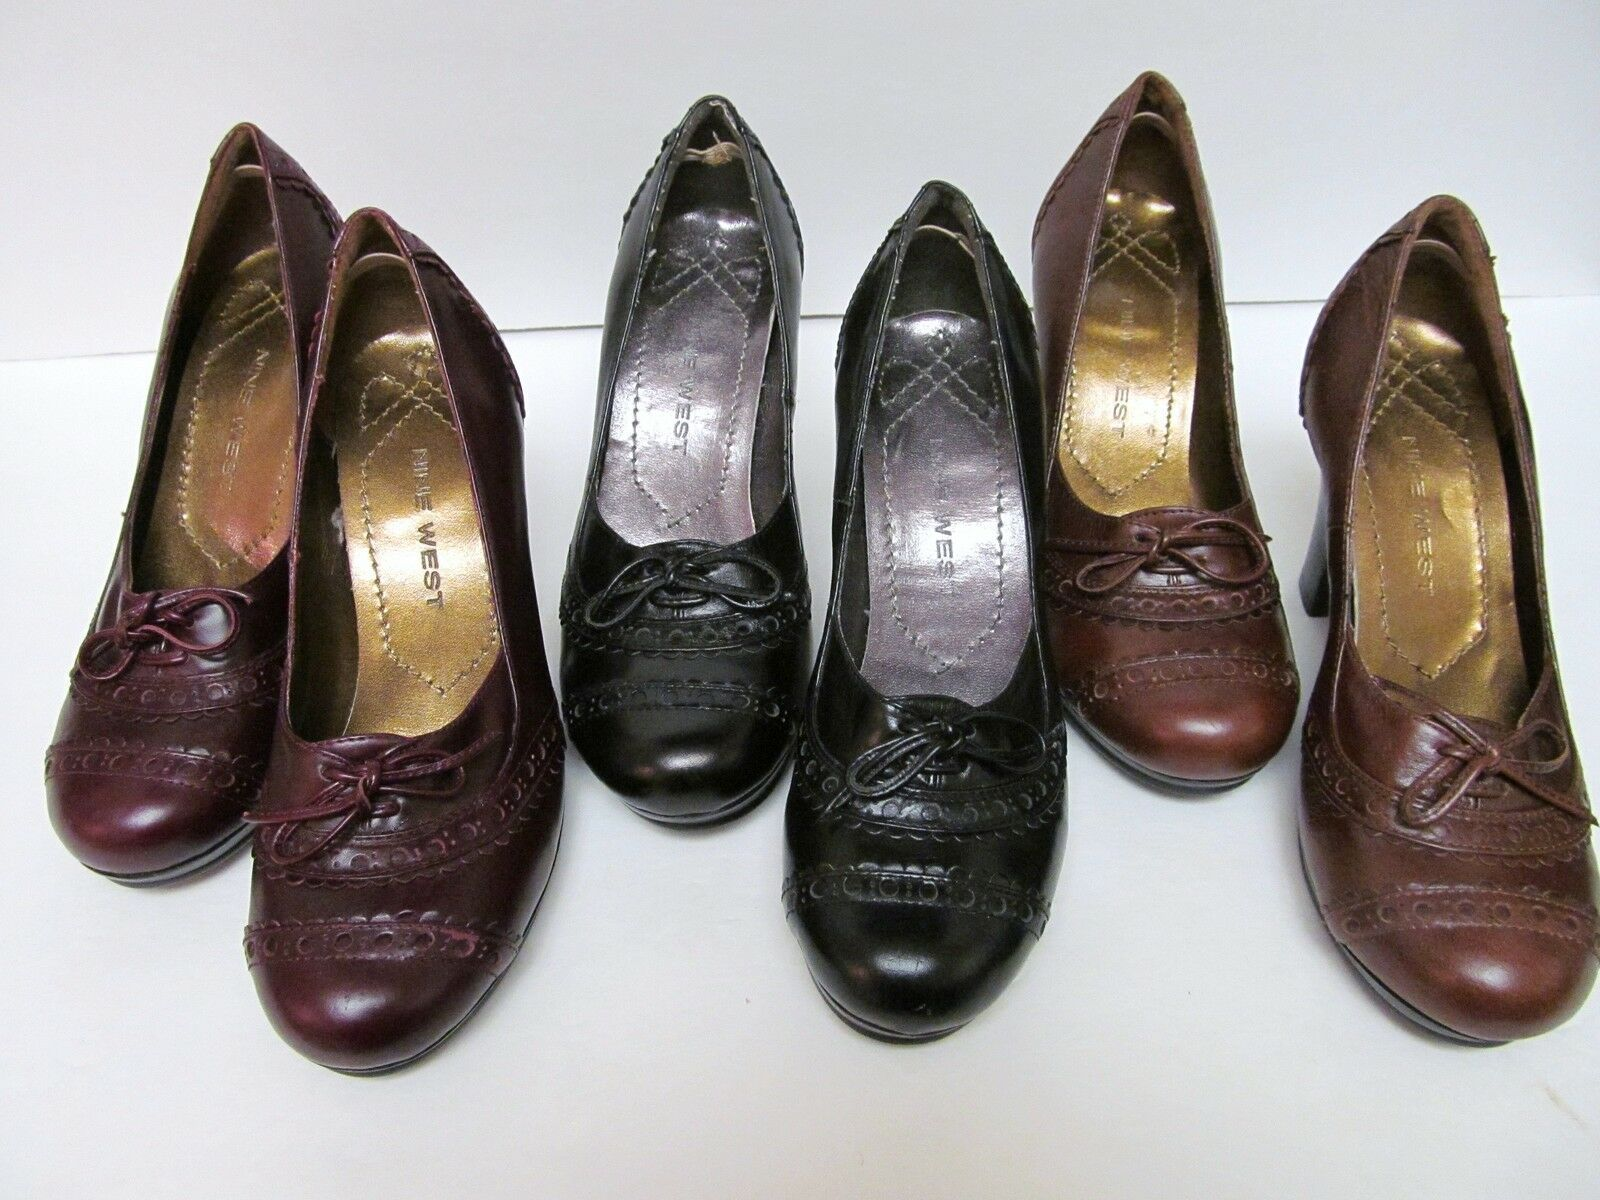 Primary image for NINE WEST Pump Shoes Spectator Look Stacked Heel 3 Colors To Choose From 5 M